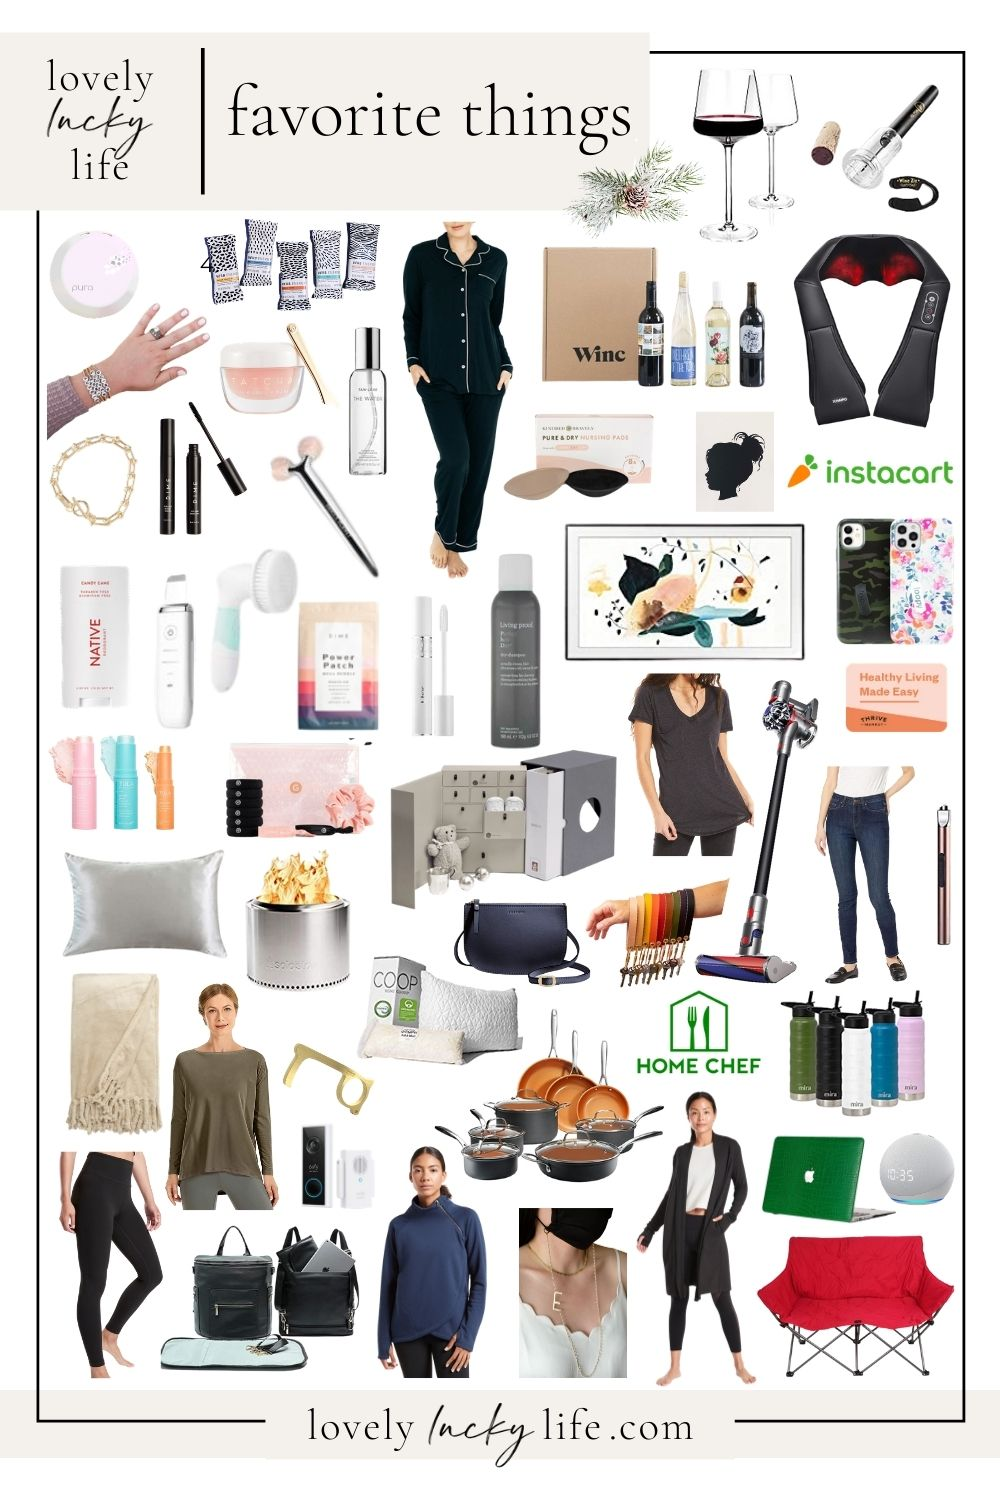 Gift Ideas for Women: My Favorite Things + Wish List